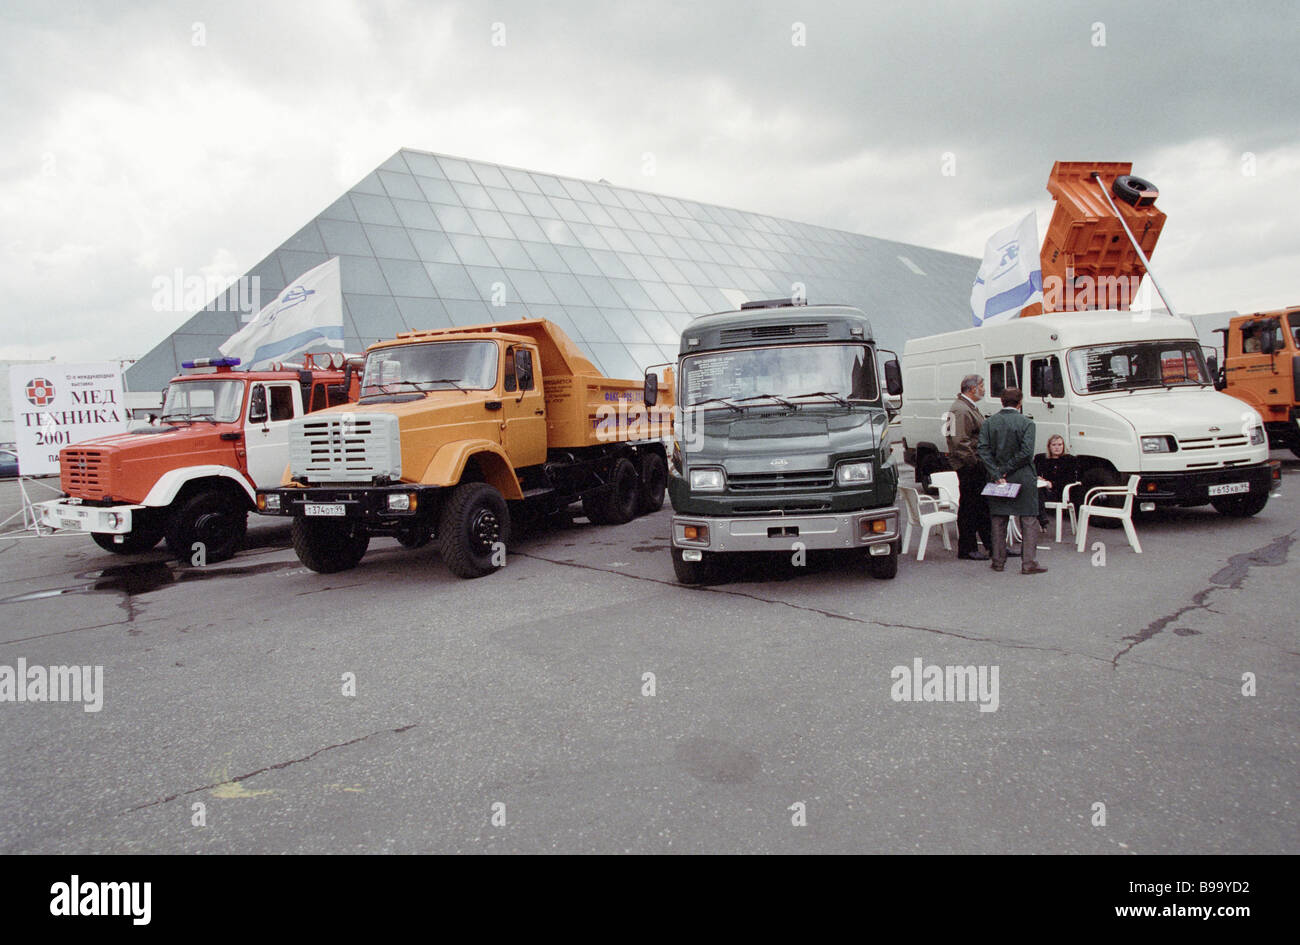 Armored vehicles designed for collection services safe ...